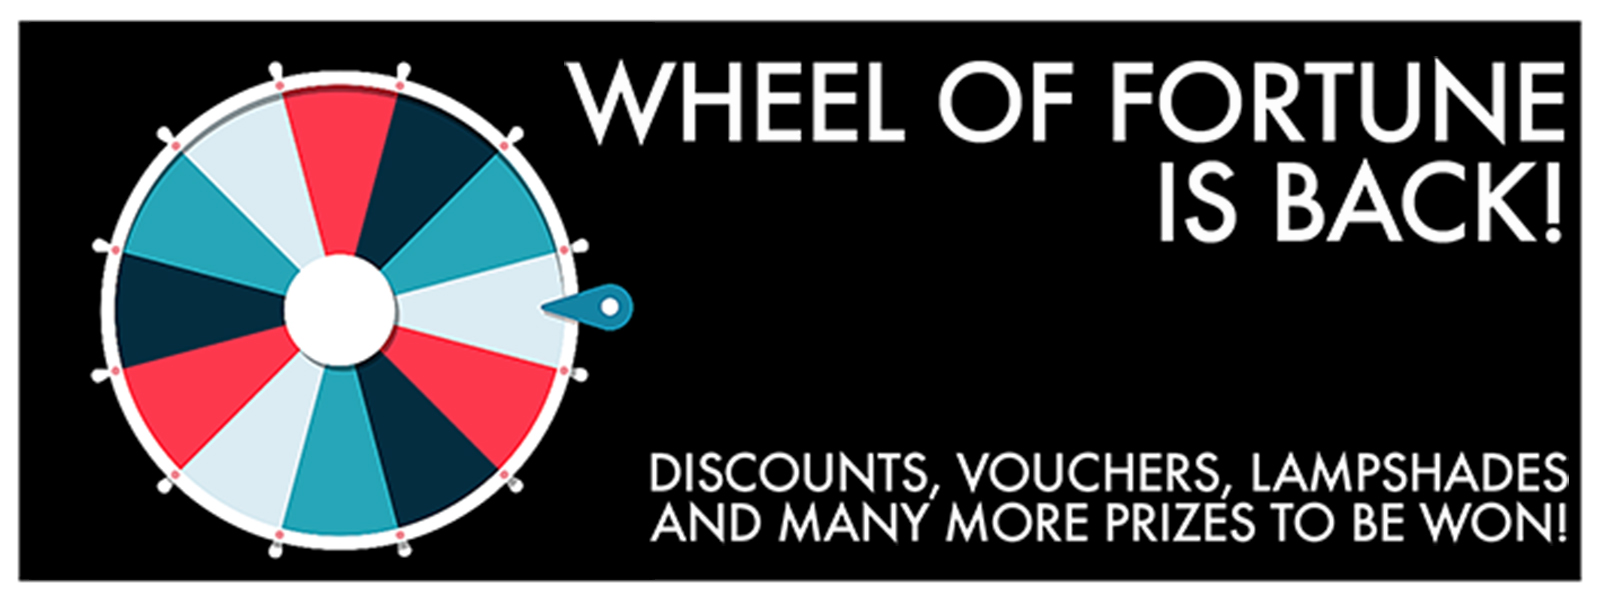 Wheel of Fortune Discount Game only at Love Frankie